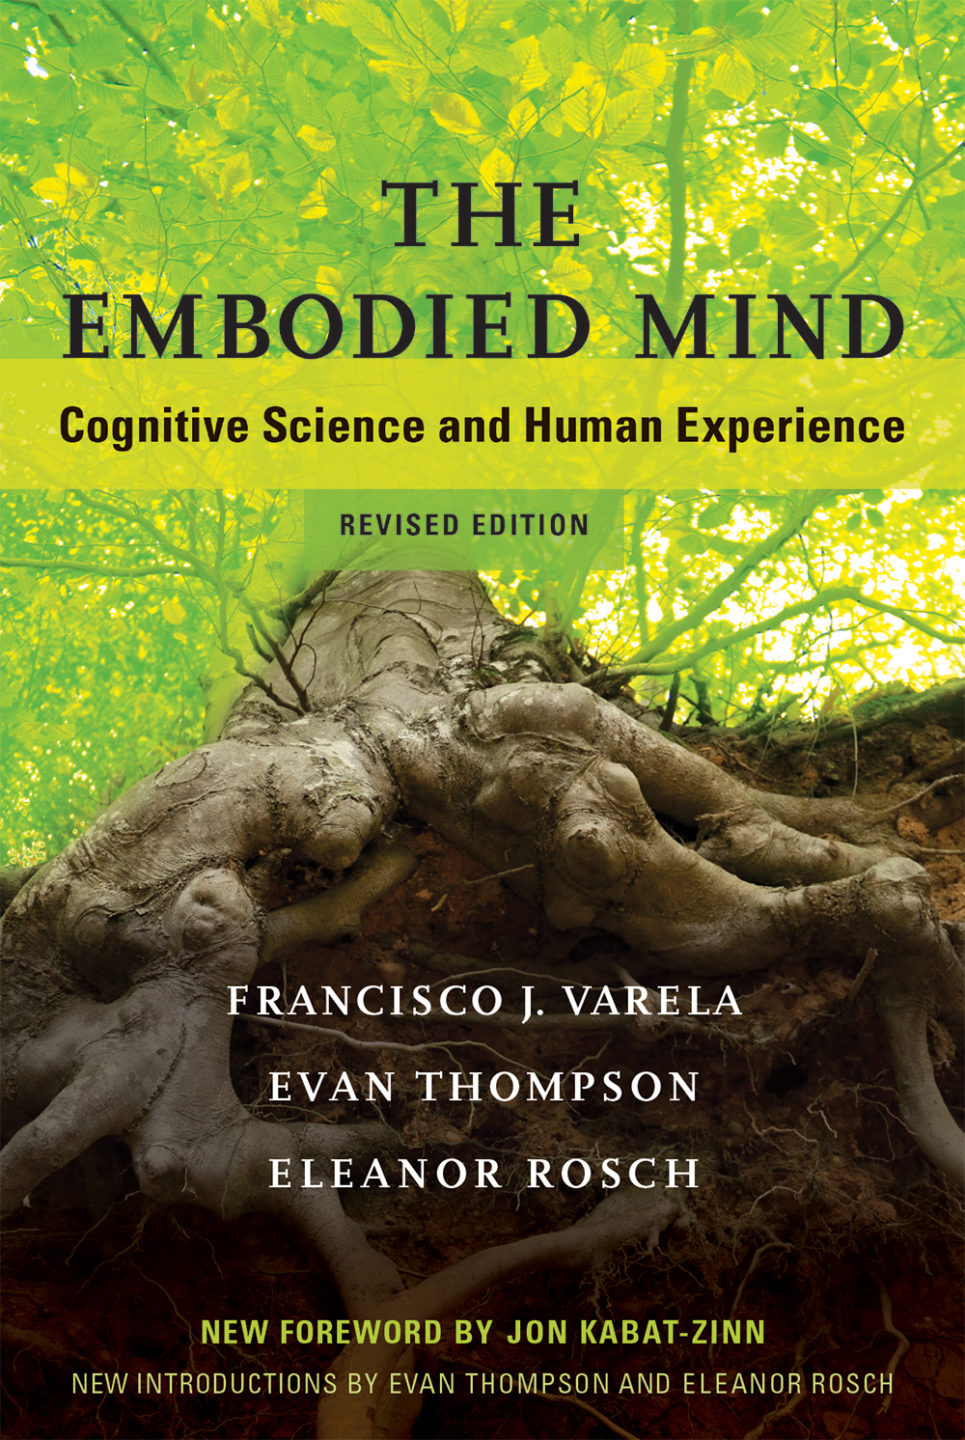 The Embodied Mind: An Introduction